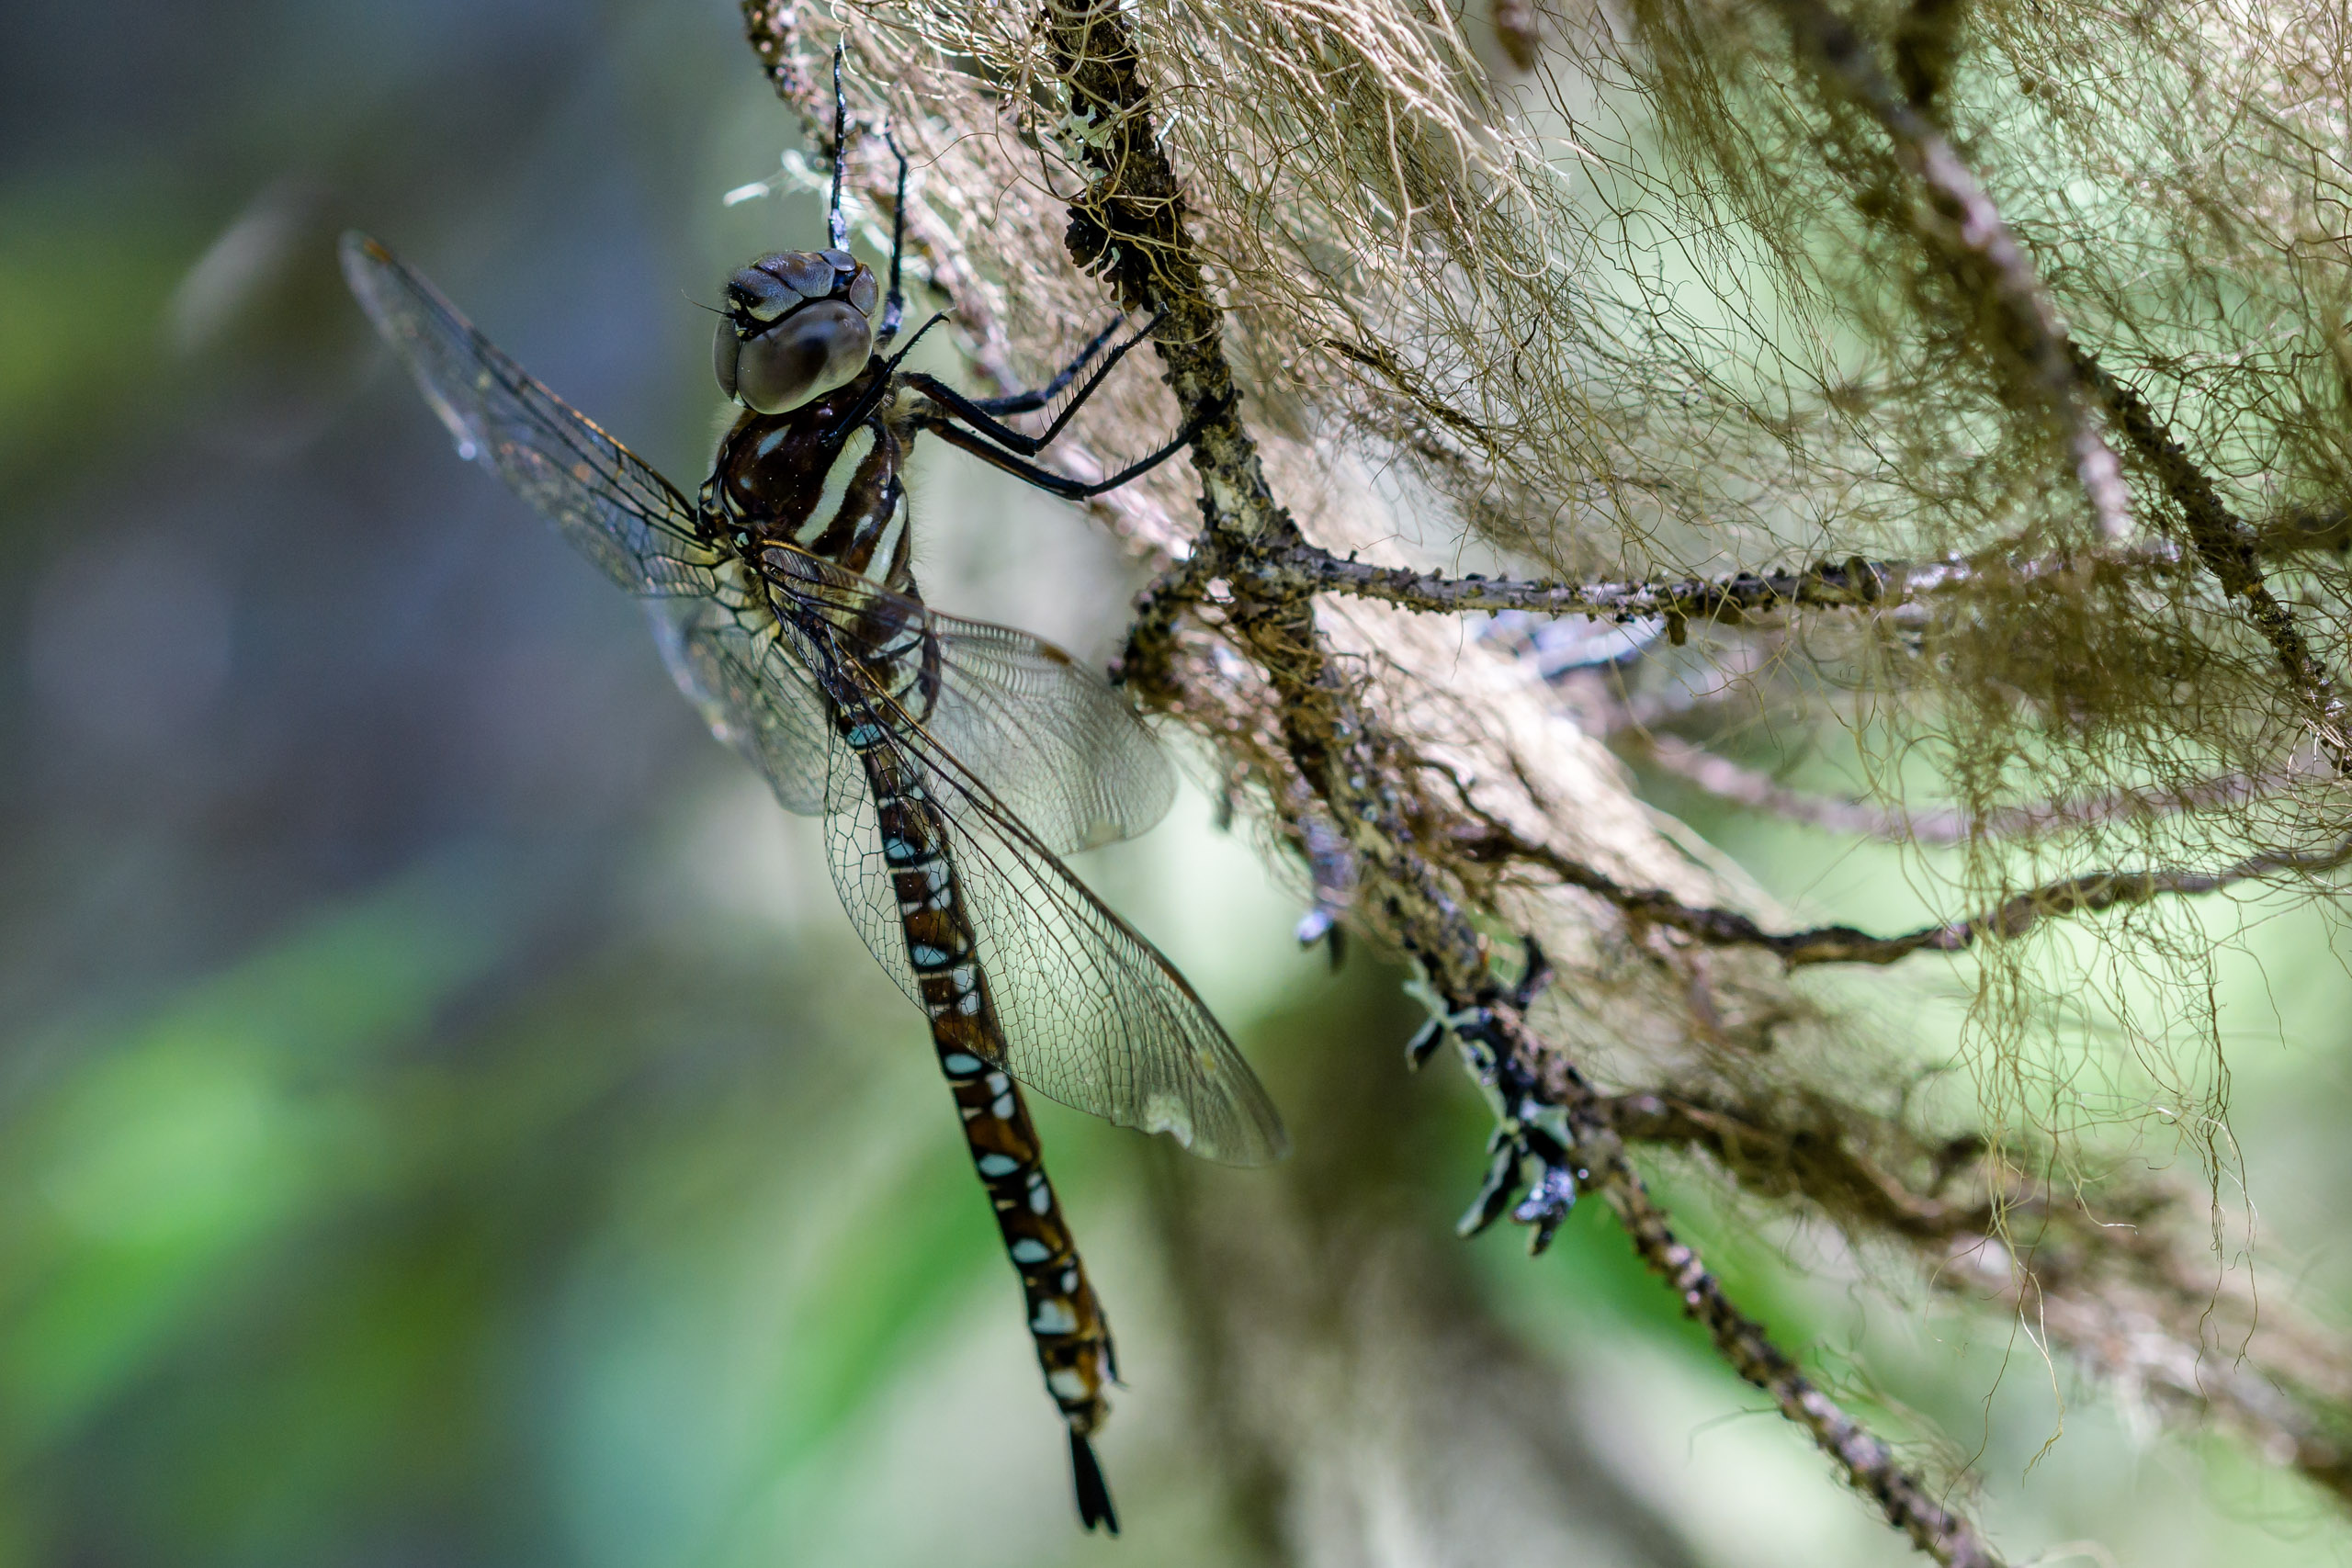 Paddle-tailed Darner (Aeshna palmata) from Big Creek, Bitterroot Mountains, Montana